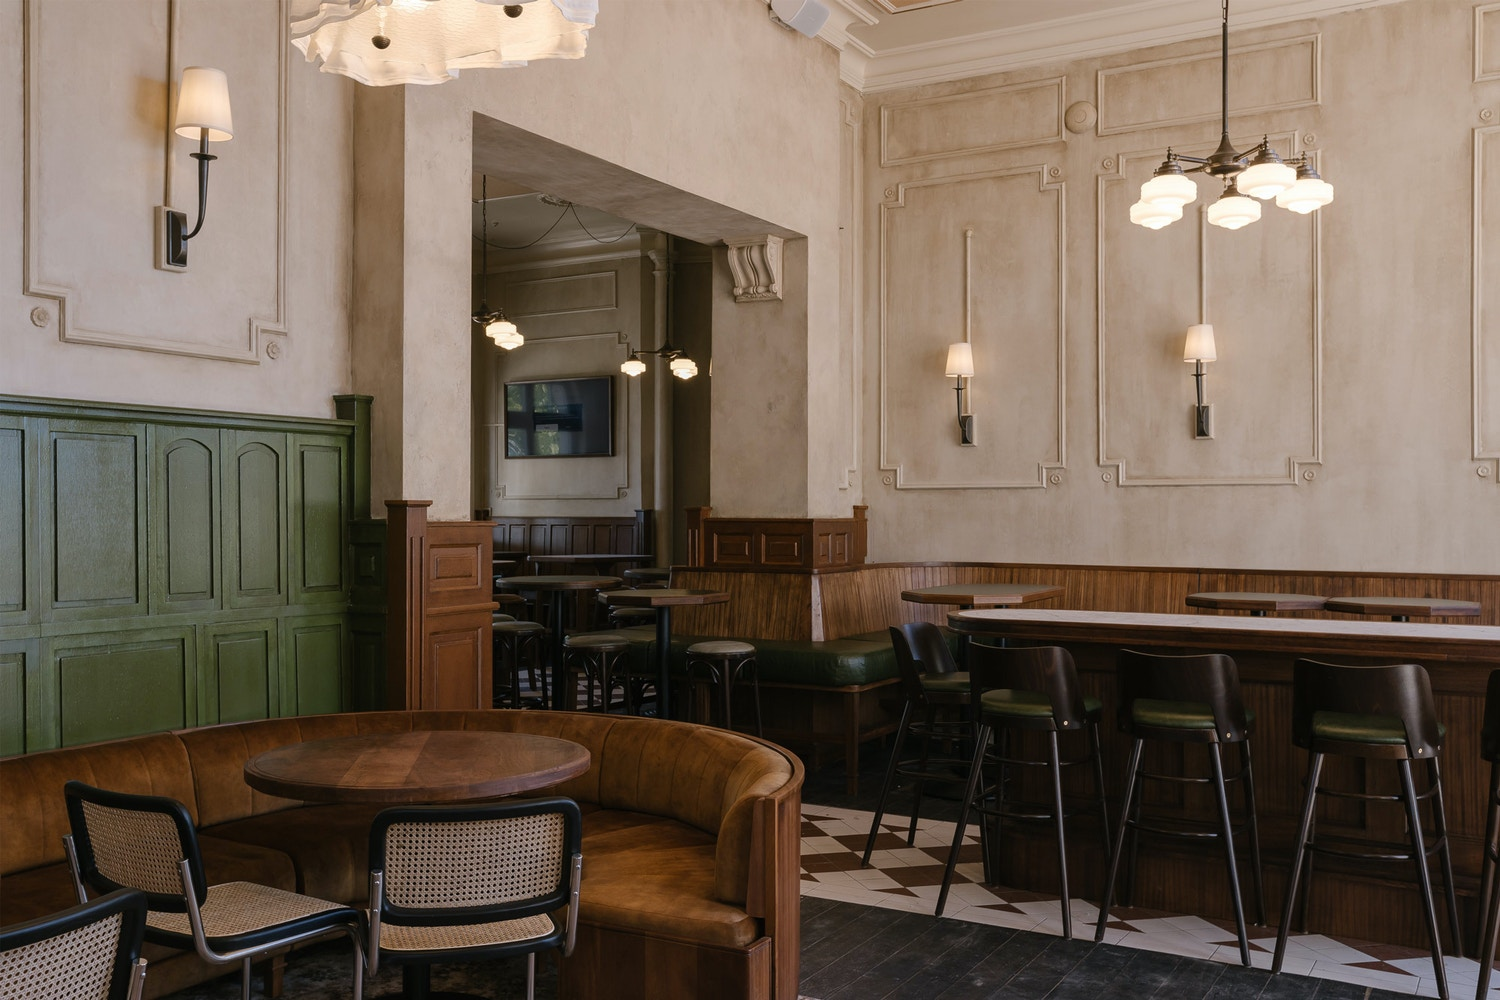 The owner's interest in the 1930s era, alongside the colours and materials found in typical British pubs, formed the starting point for the interiors.